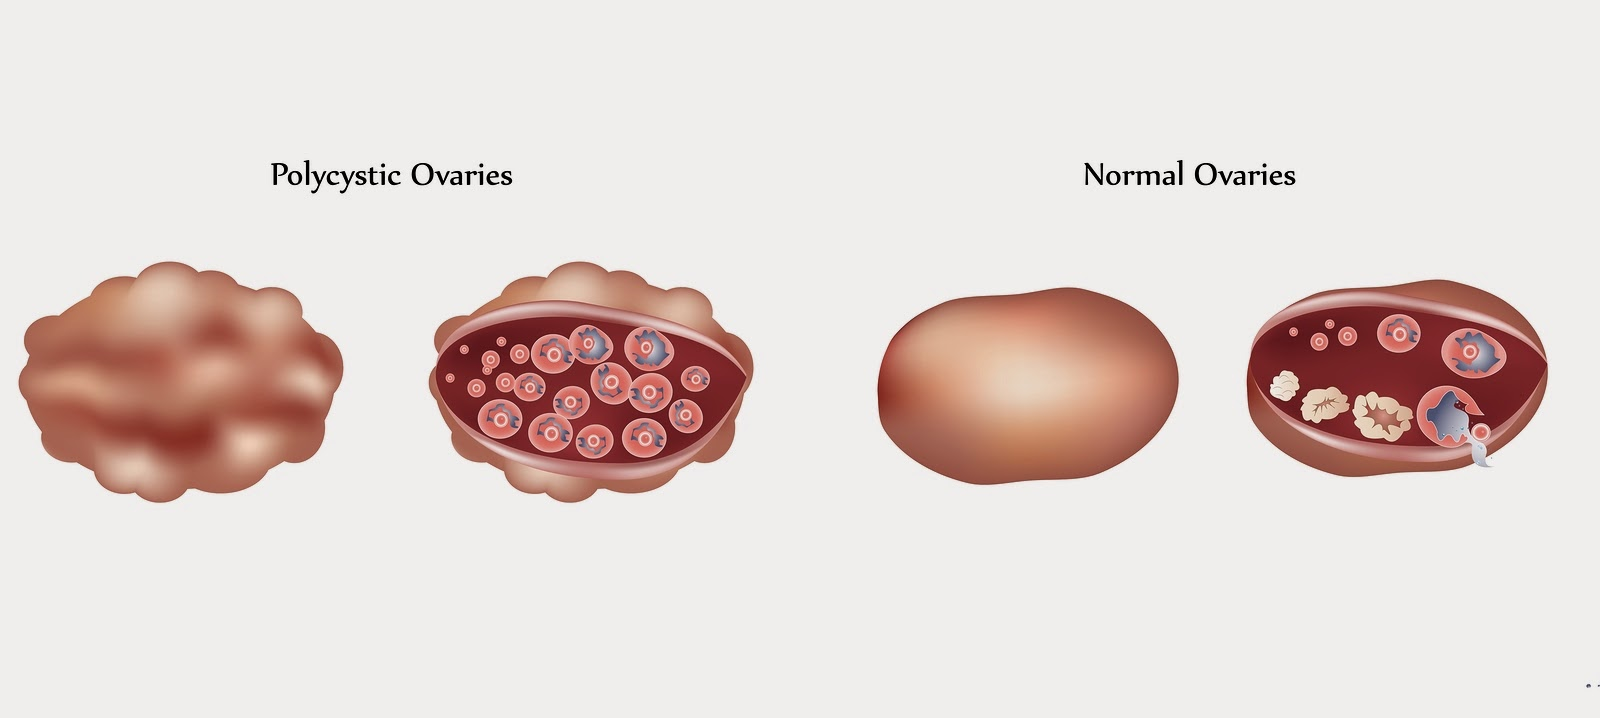 Polycystic Ovary vs Normal Ovary - PCOS